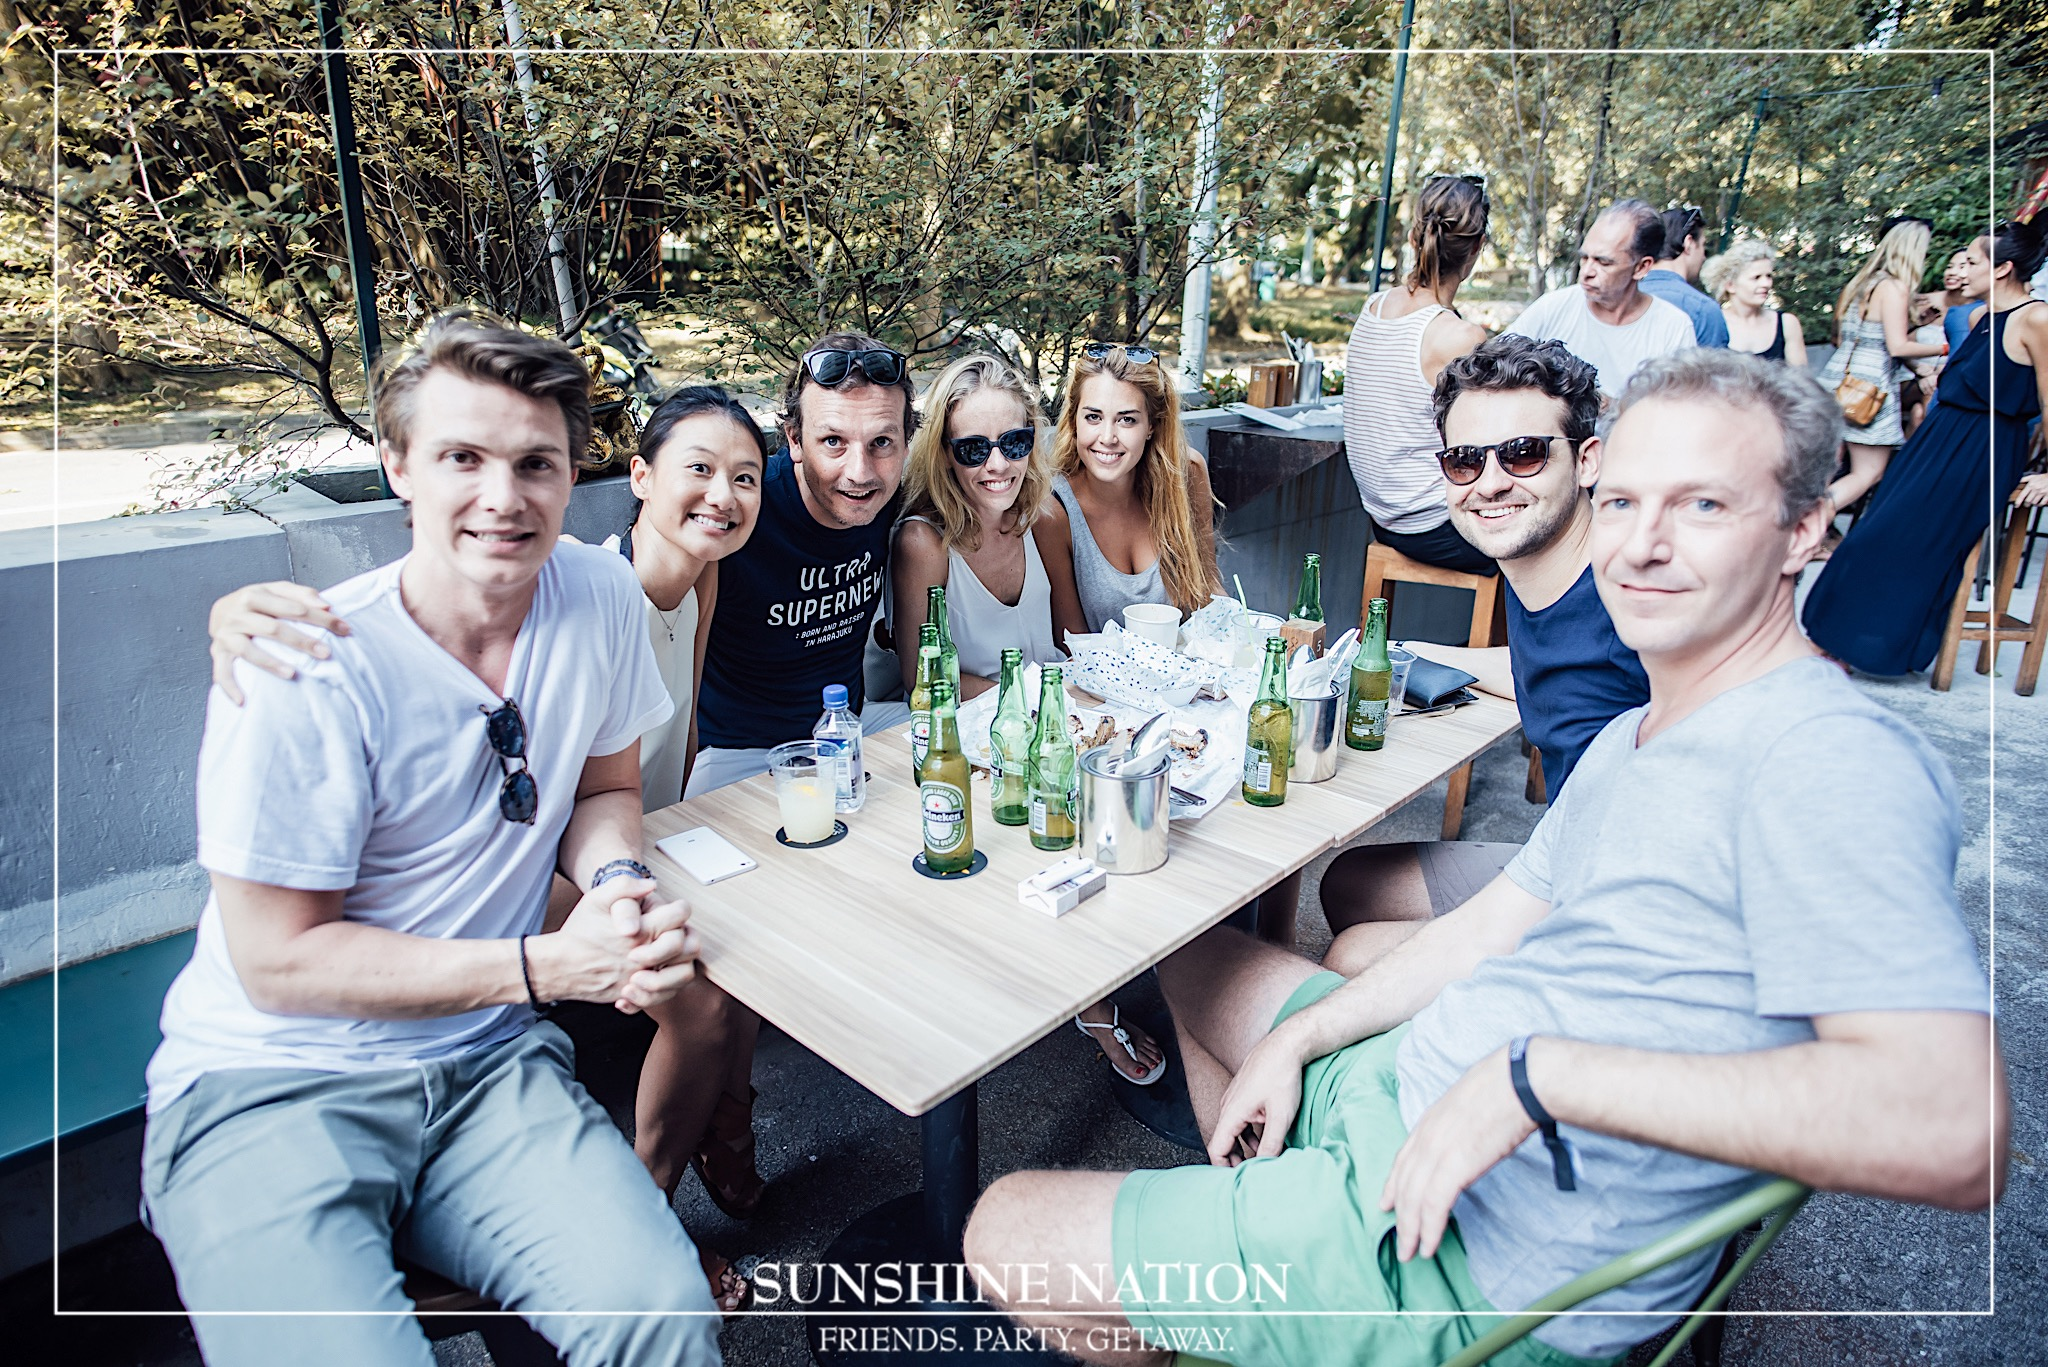 18092016_SunshineNation_Colossal055_Watermarked.jpg